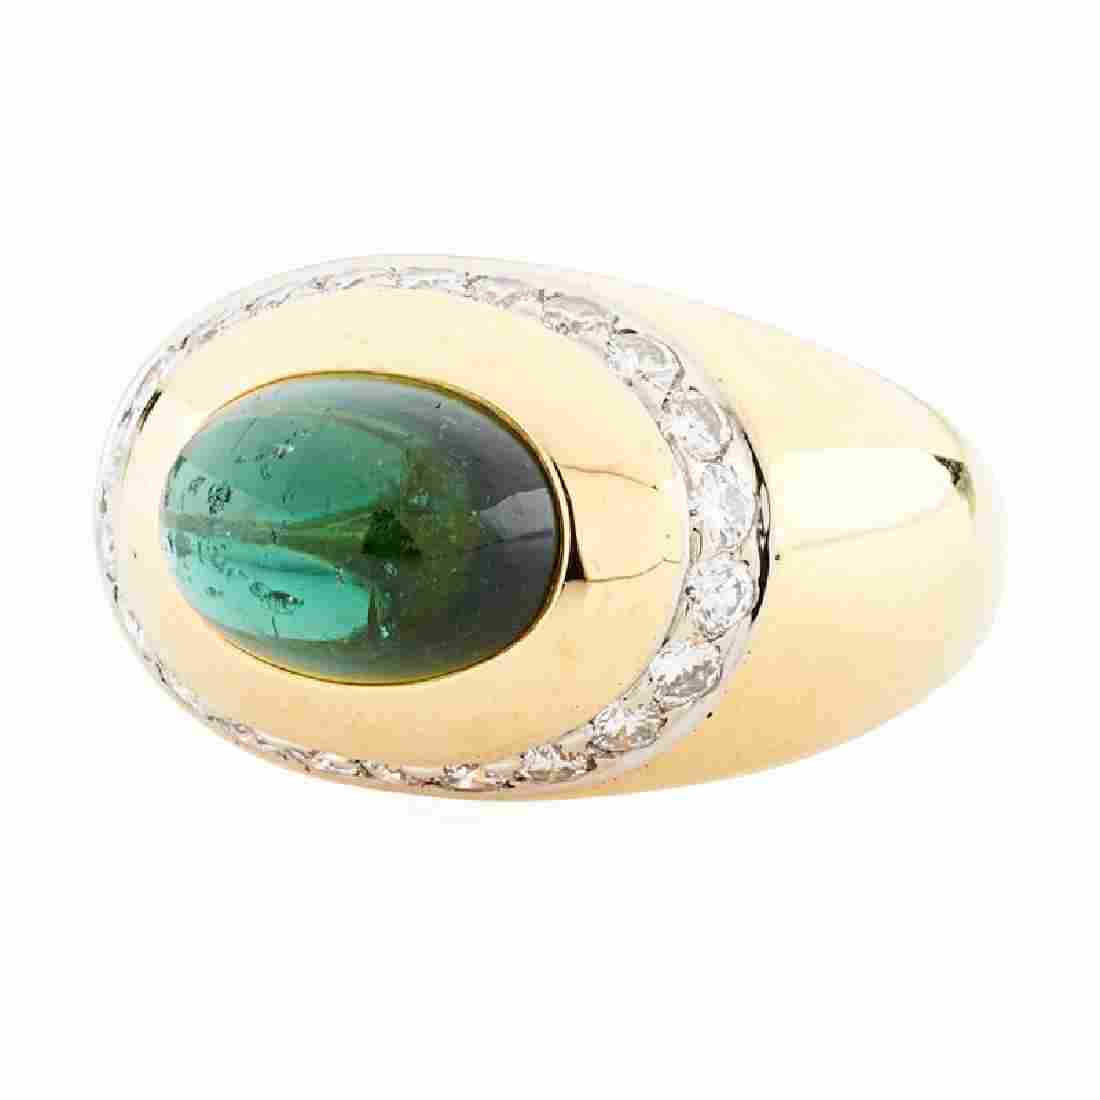 TIFFANY & CO. TOURMALINE, DIAMOND, & YELLOW GOLD RING